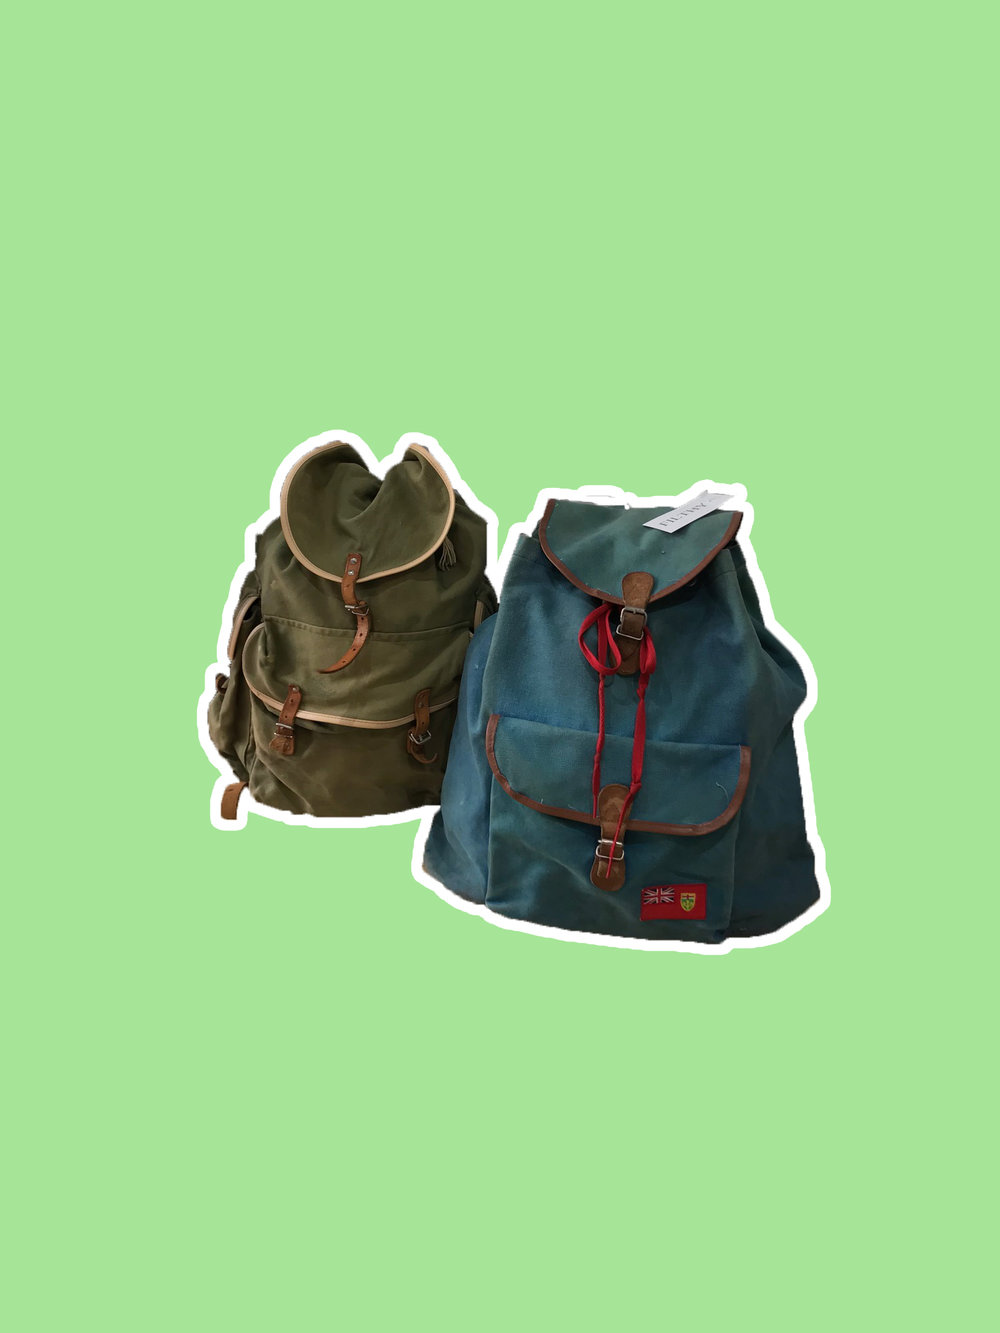 two-backpacks2.jpg